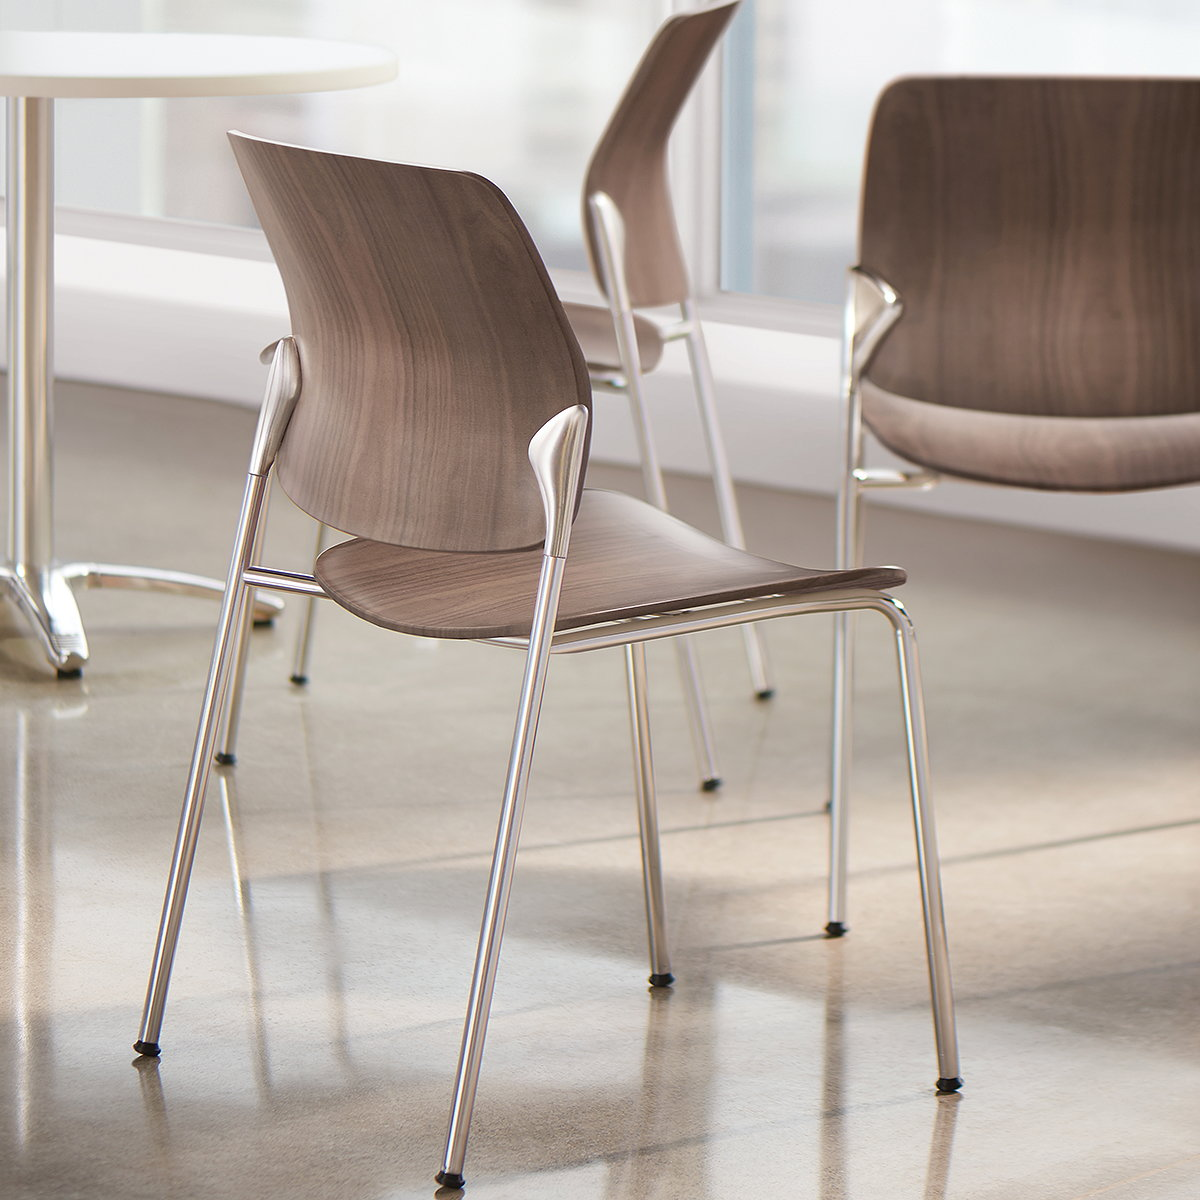 Allseating Adds New Wood Offerings to the Astute Collection